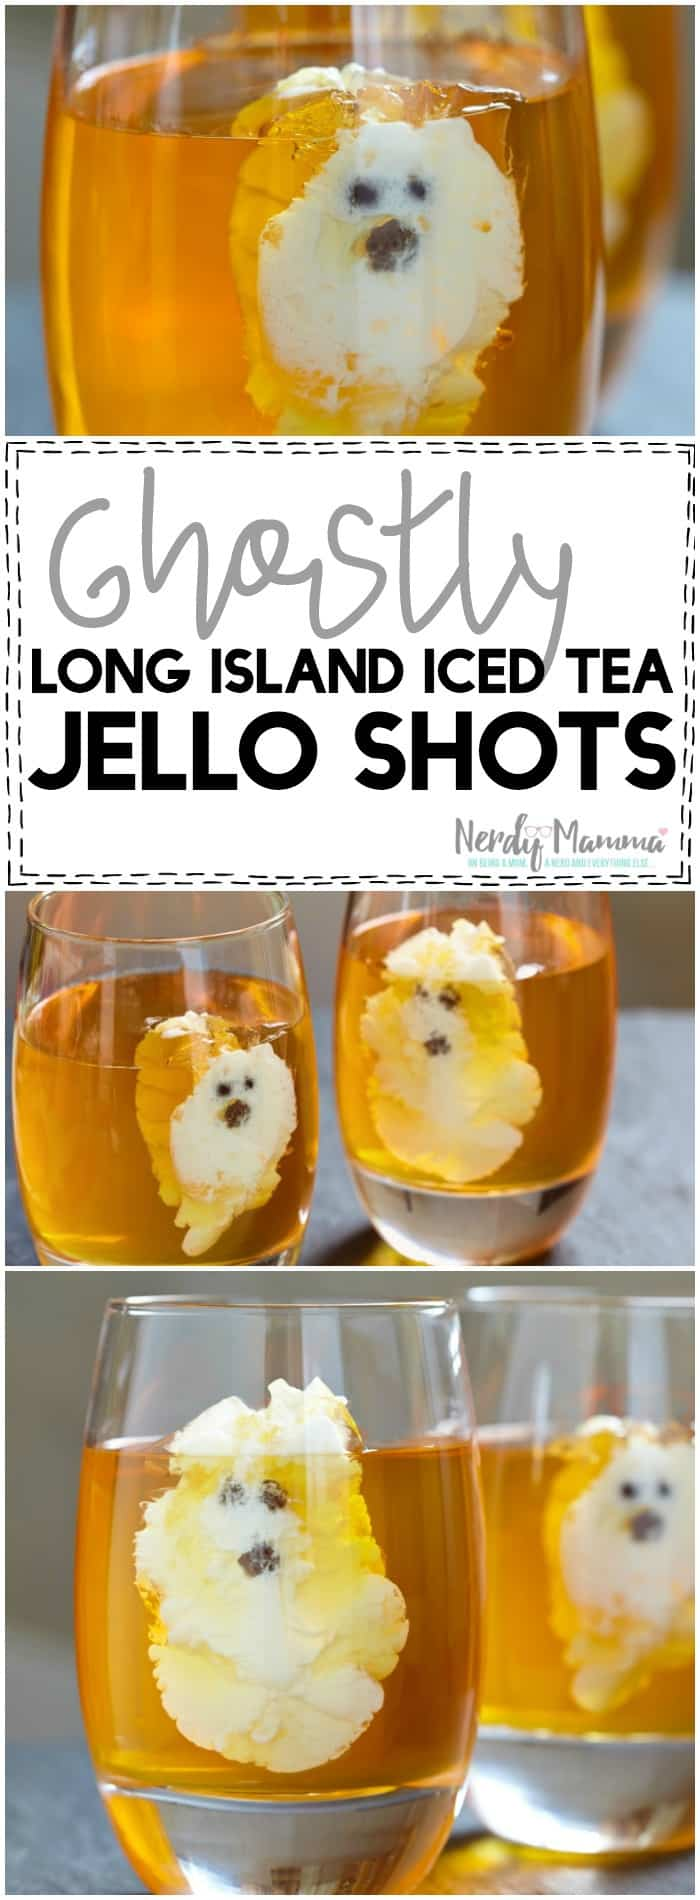 Oh, wow. I can't wait to try this recipe for Ghostly (heh) Long Island Iced Tea Jello Shots at my Halloween Party! So fun! Love it!